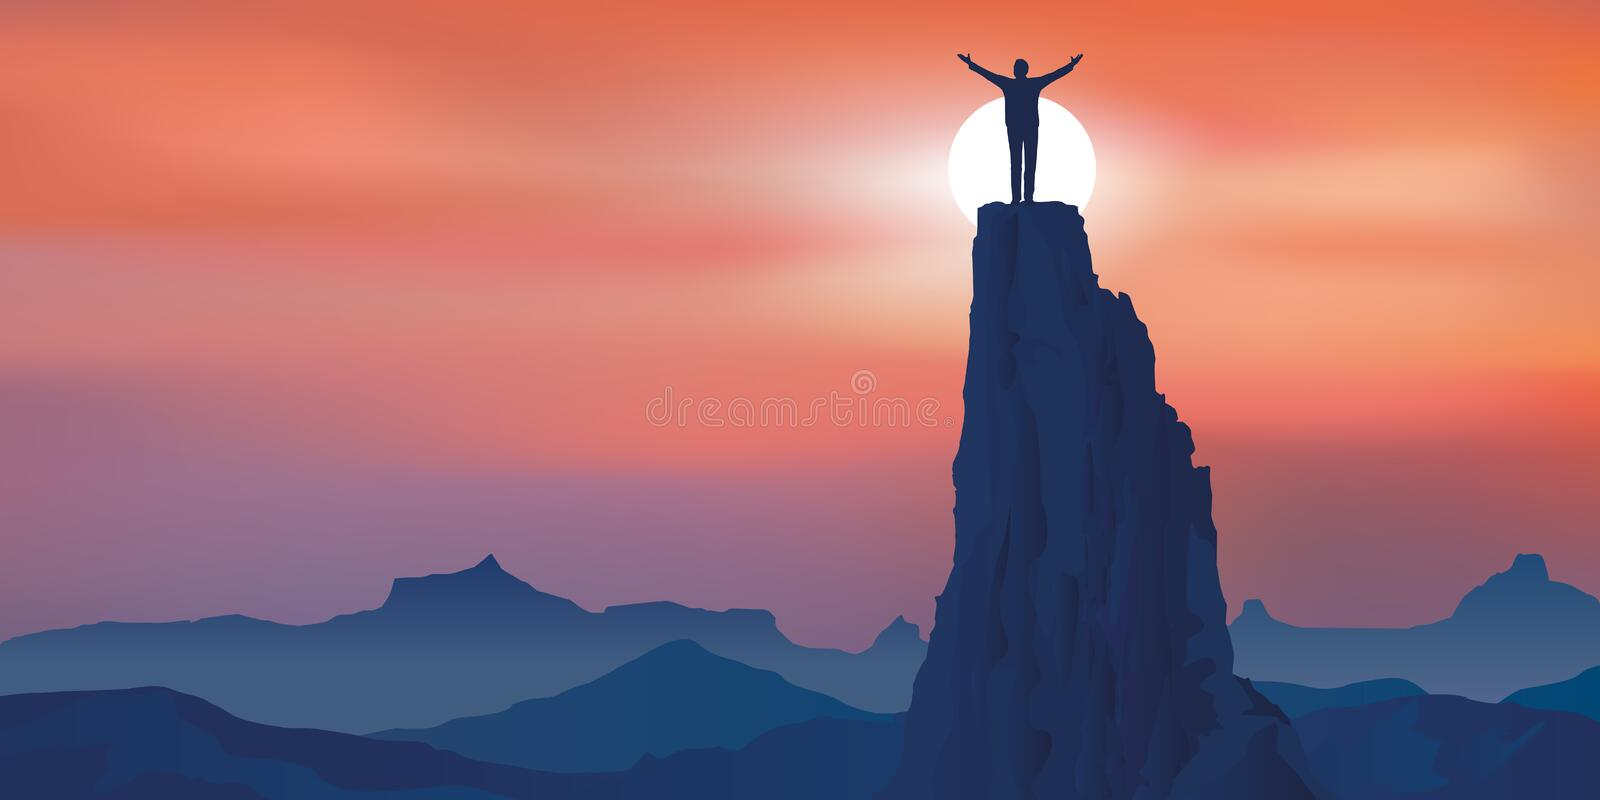 Concept of success with a man having achieved his goal by arriving at the top of a mountain. stock illustration